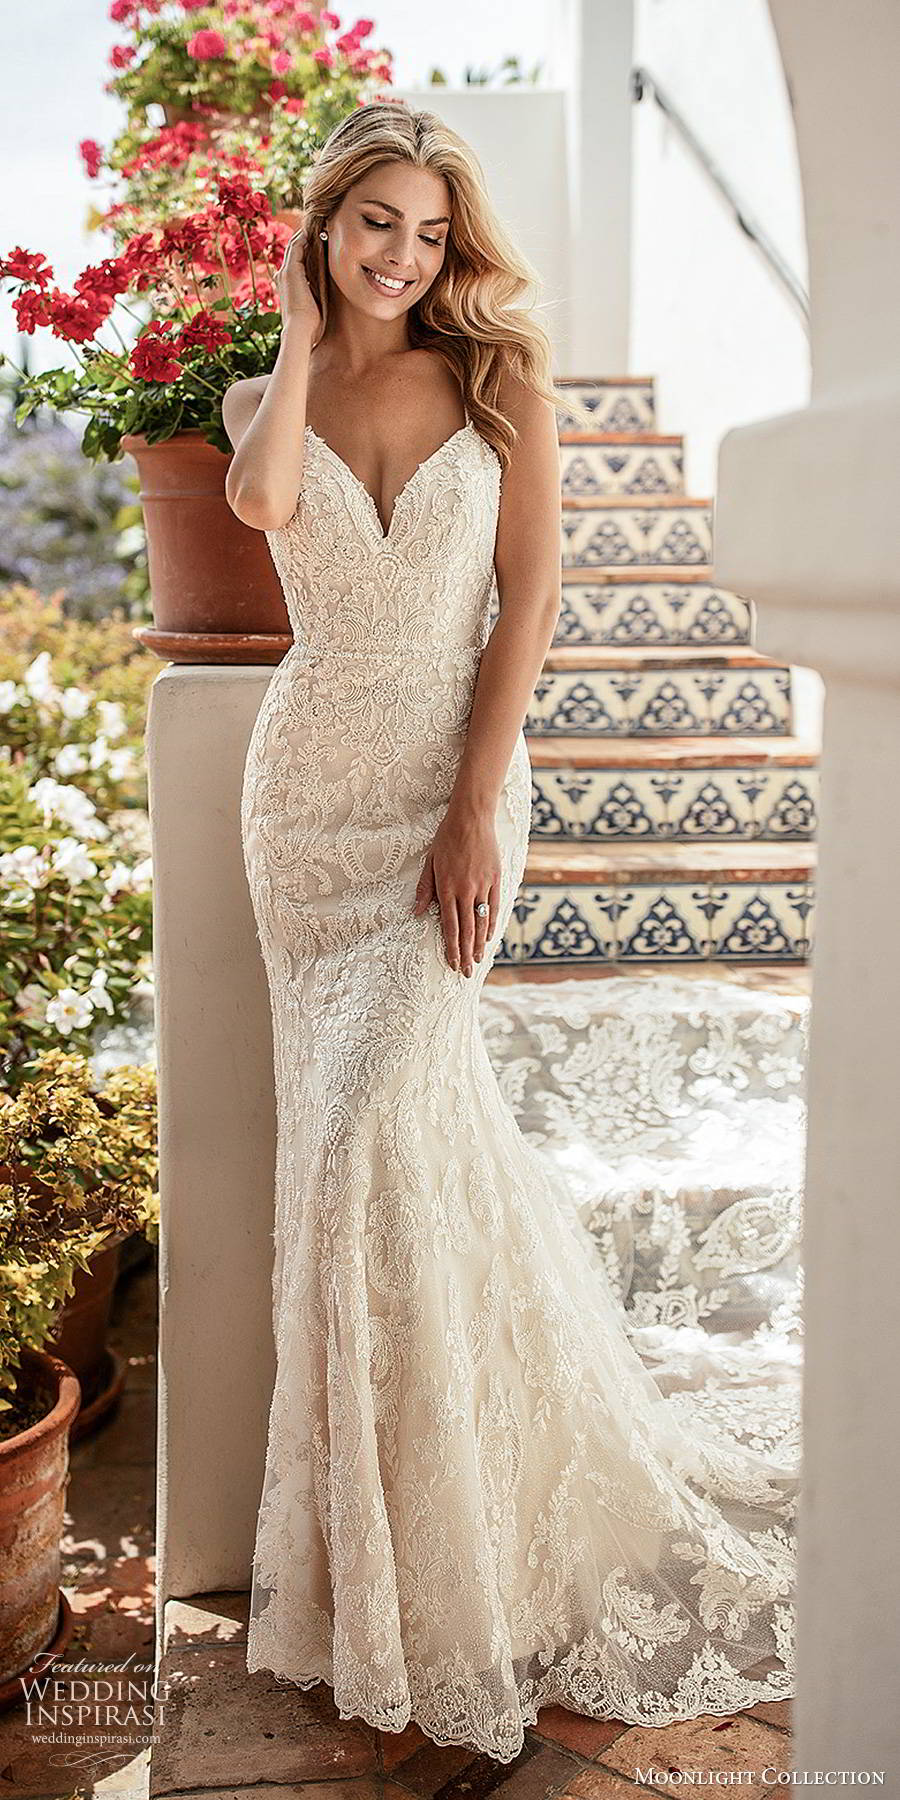 moonlight collection spring 2020 bridal sleeveless thin straps sweetheart neckline fully embellished lace elegant trumpet sheath wedding dress chapel train  (4) mv